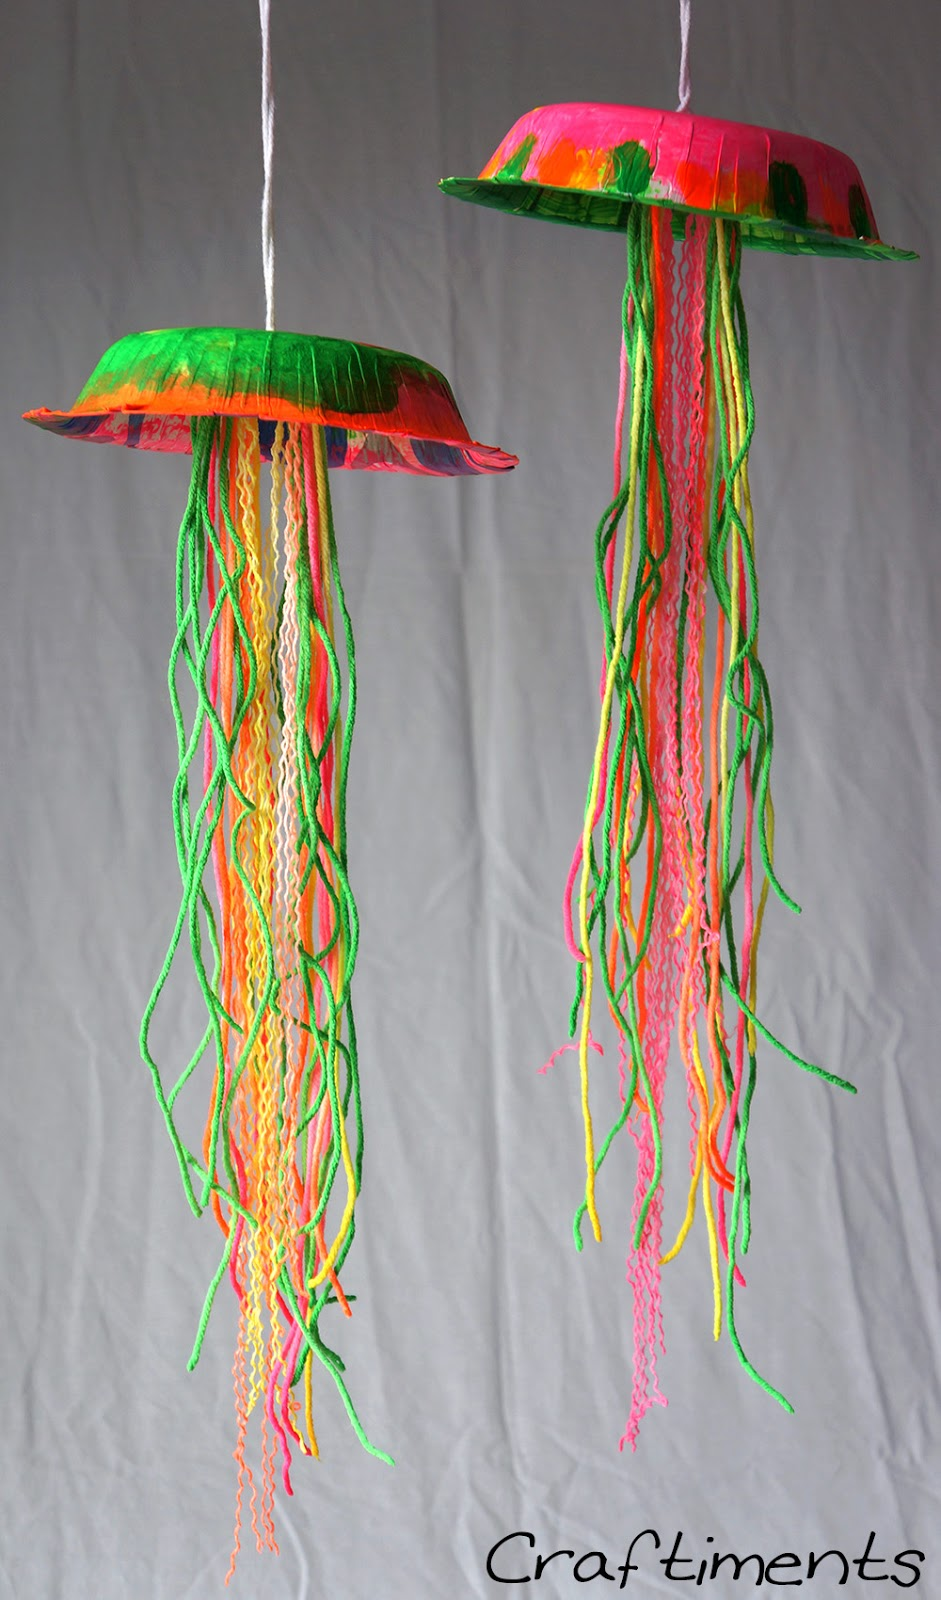 Kid's Craft Glow in the Dark Jellyfish